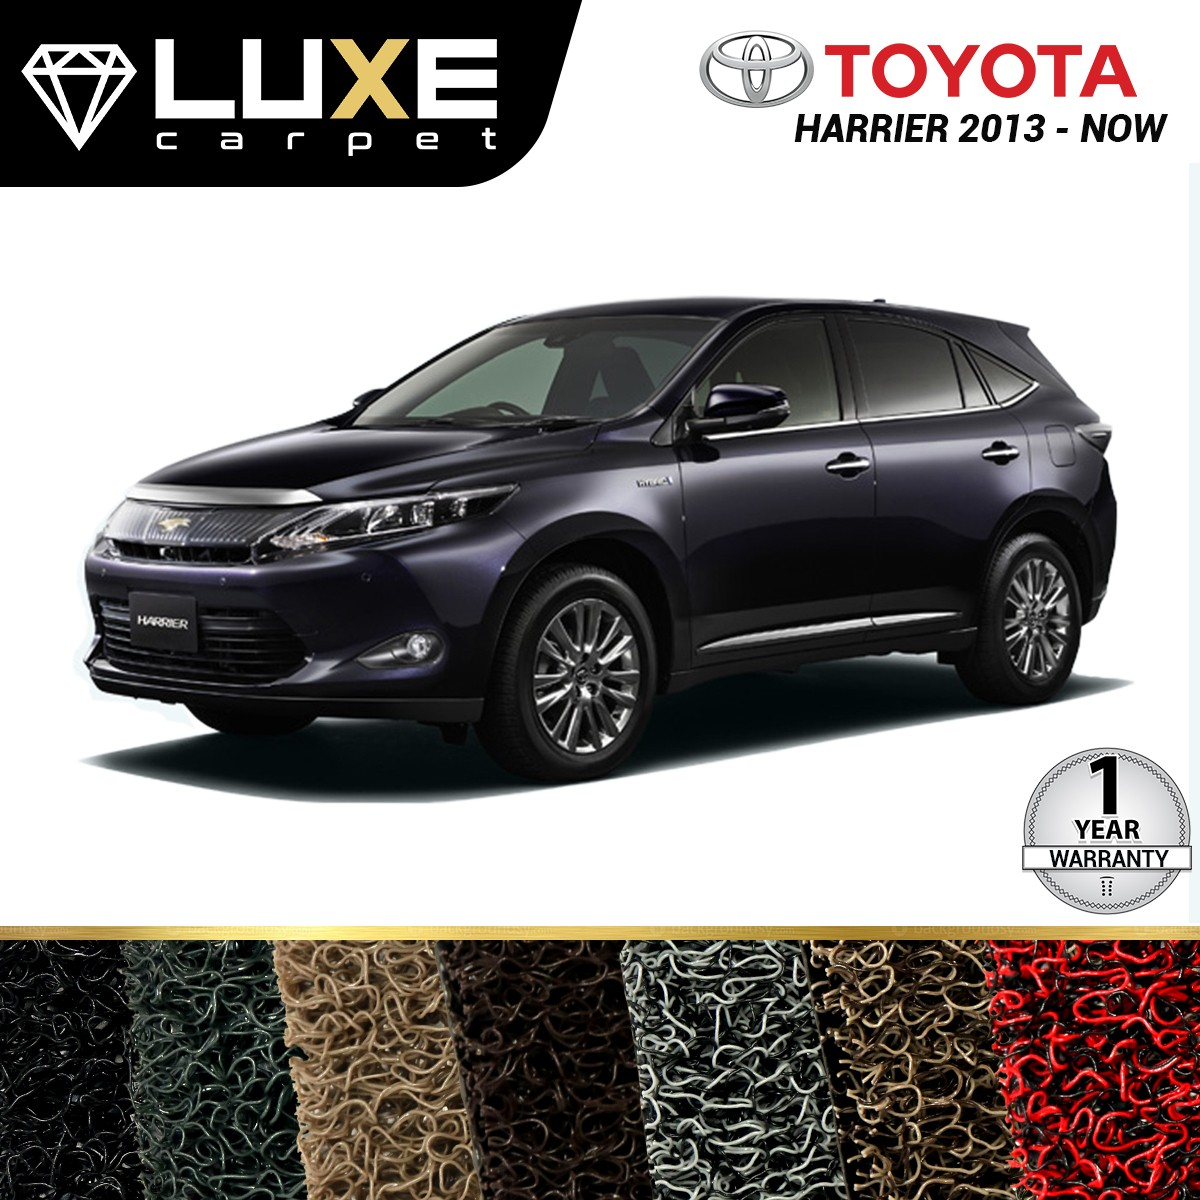 KARPET LUXE + BAGASI TOYOTA HARRIER 2013-NOW  - GOLD SERIES